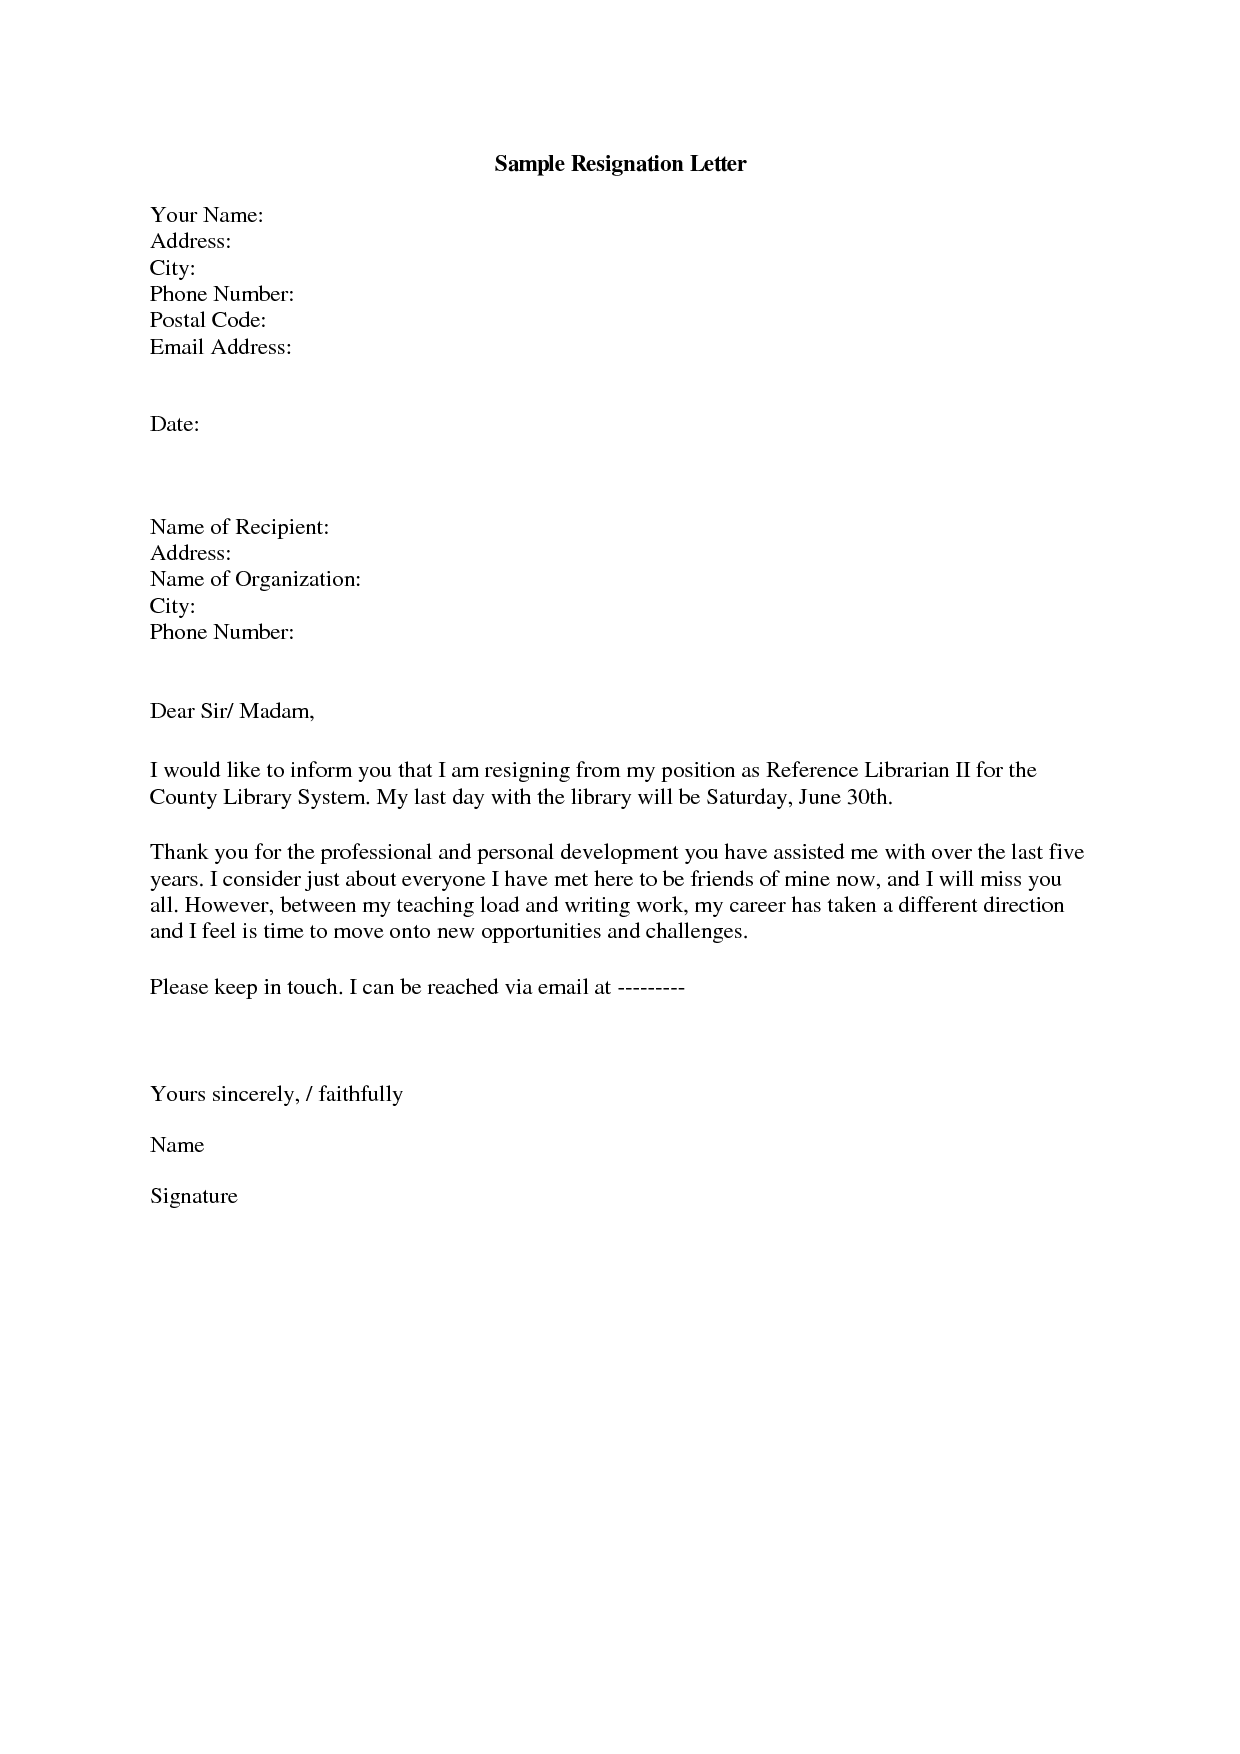 Email Resignation Letter Sample      Letters